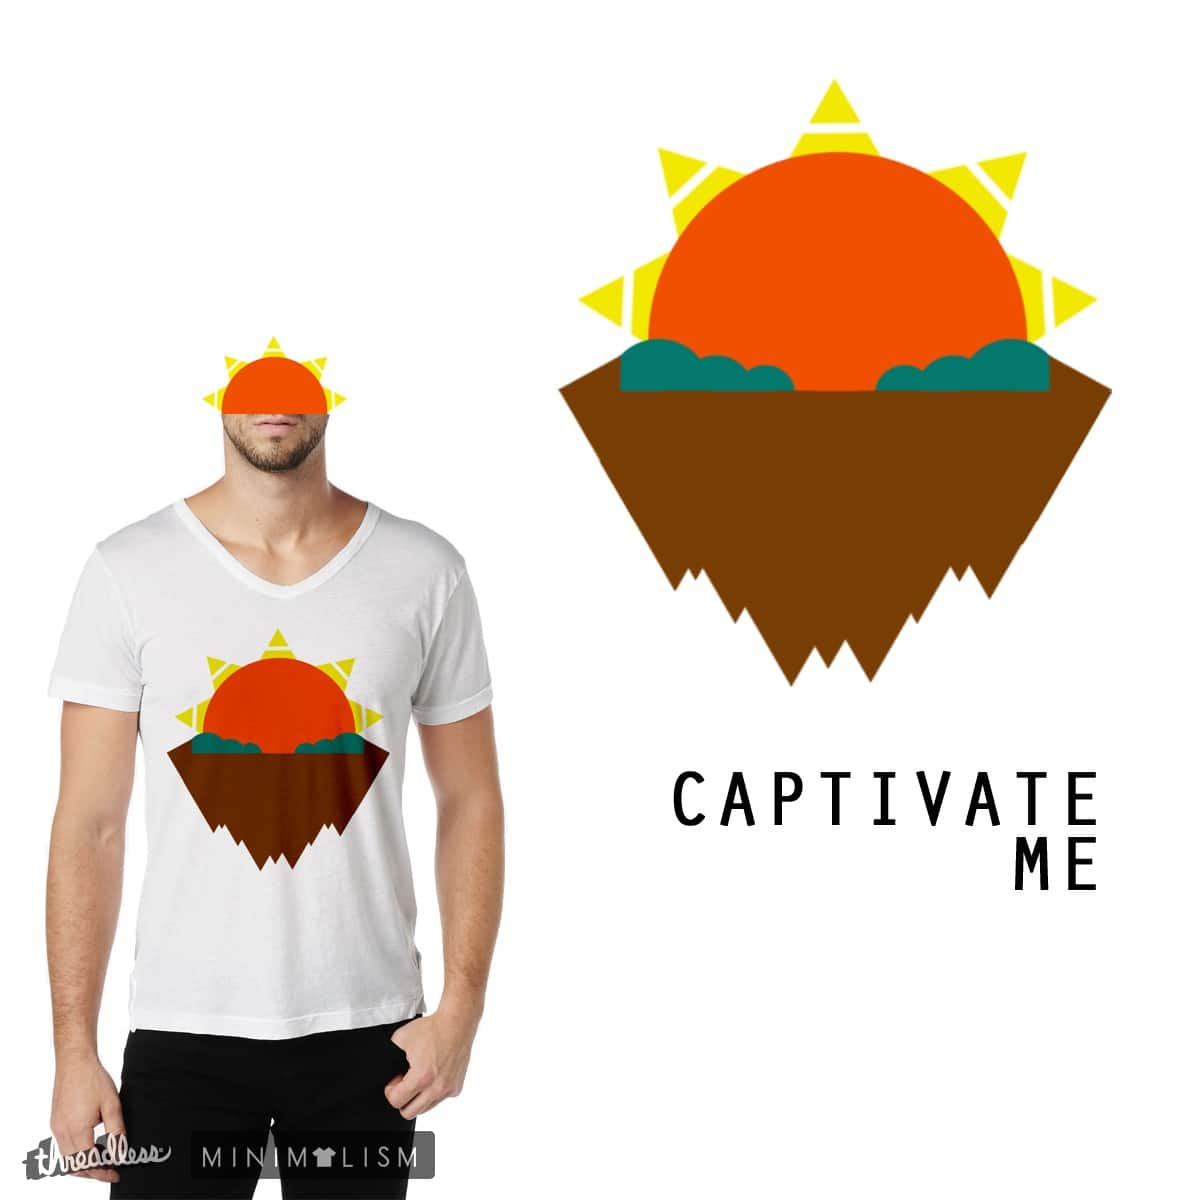 Captivate Me by aaron_galaxy on Threadless